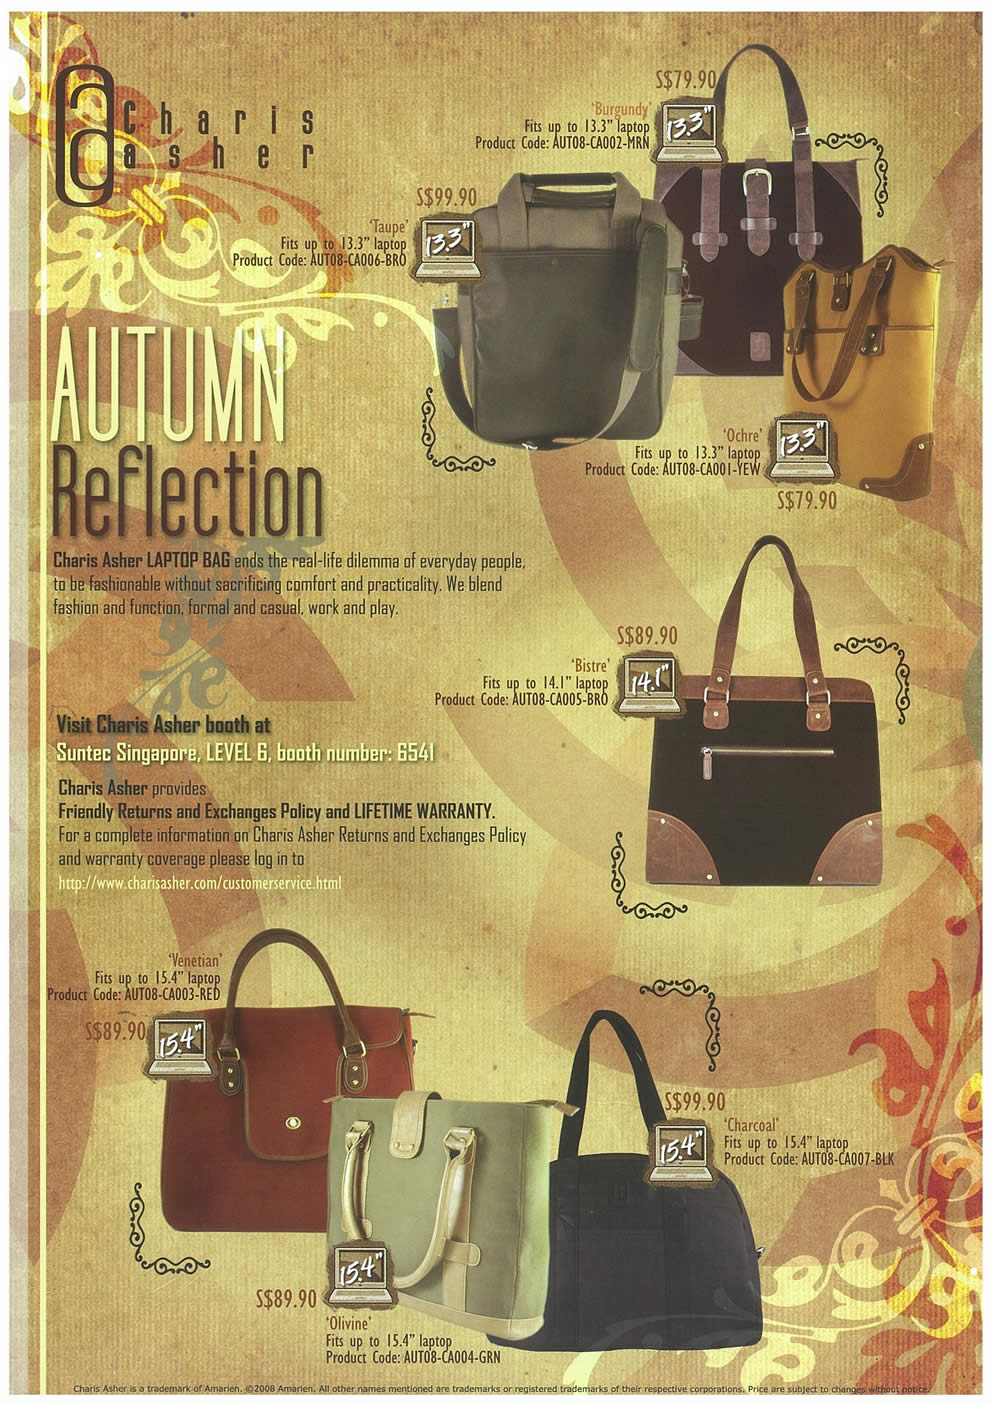 Comex 2008 price list image brochure of Charis Asher Laptop Bags Page 1